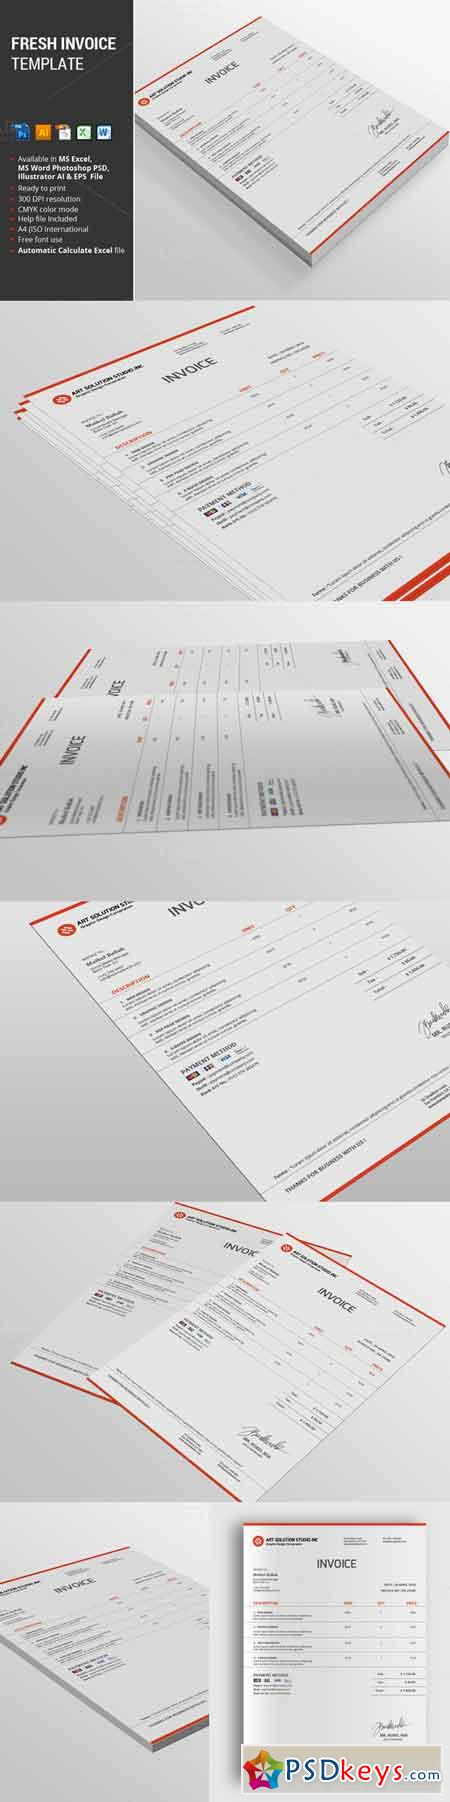 Fresh Invoice Template 638049 » Free Download Photoshop Vector Stock ...